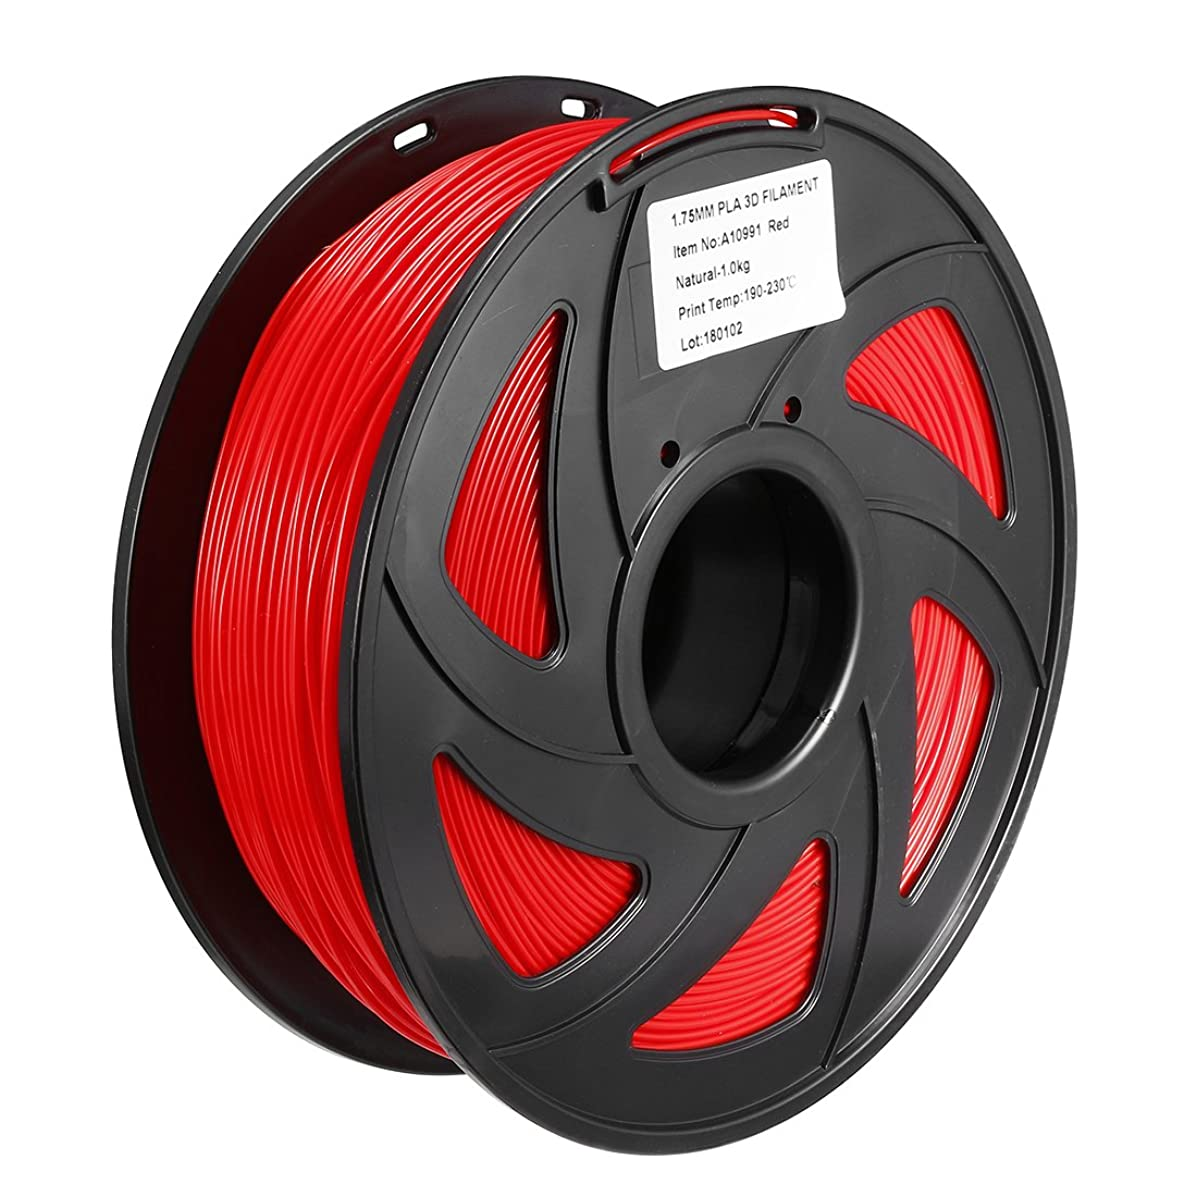 uxcell 3D Printer Pen Filament Refills, 2.2lbs(1kg), 1.75 mm Dia, PLA, Dimensional Accuracy +/- 0.02mm, for 3D Painting and Drawing,Red